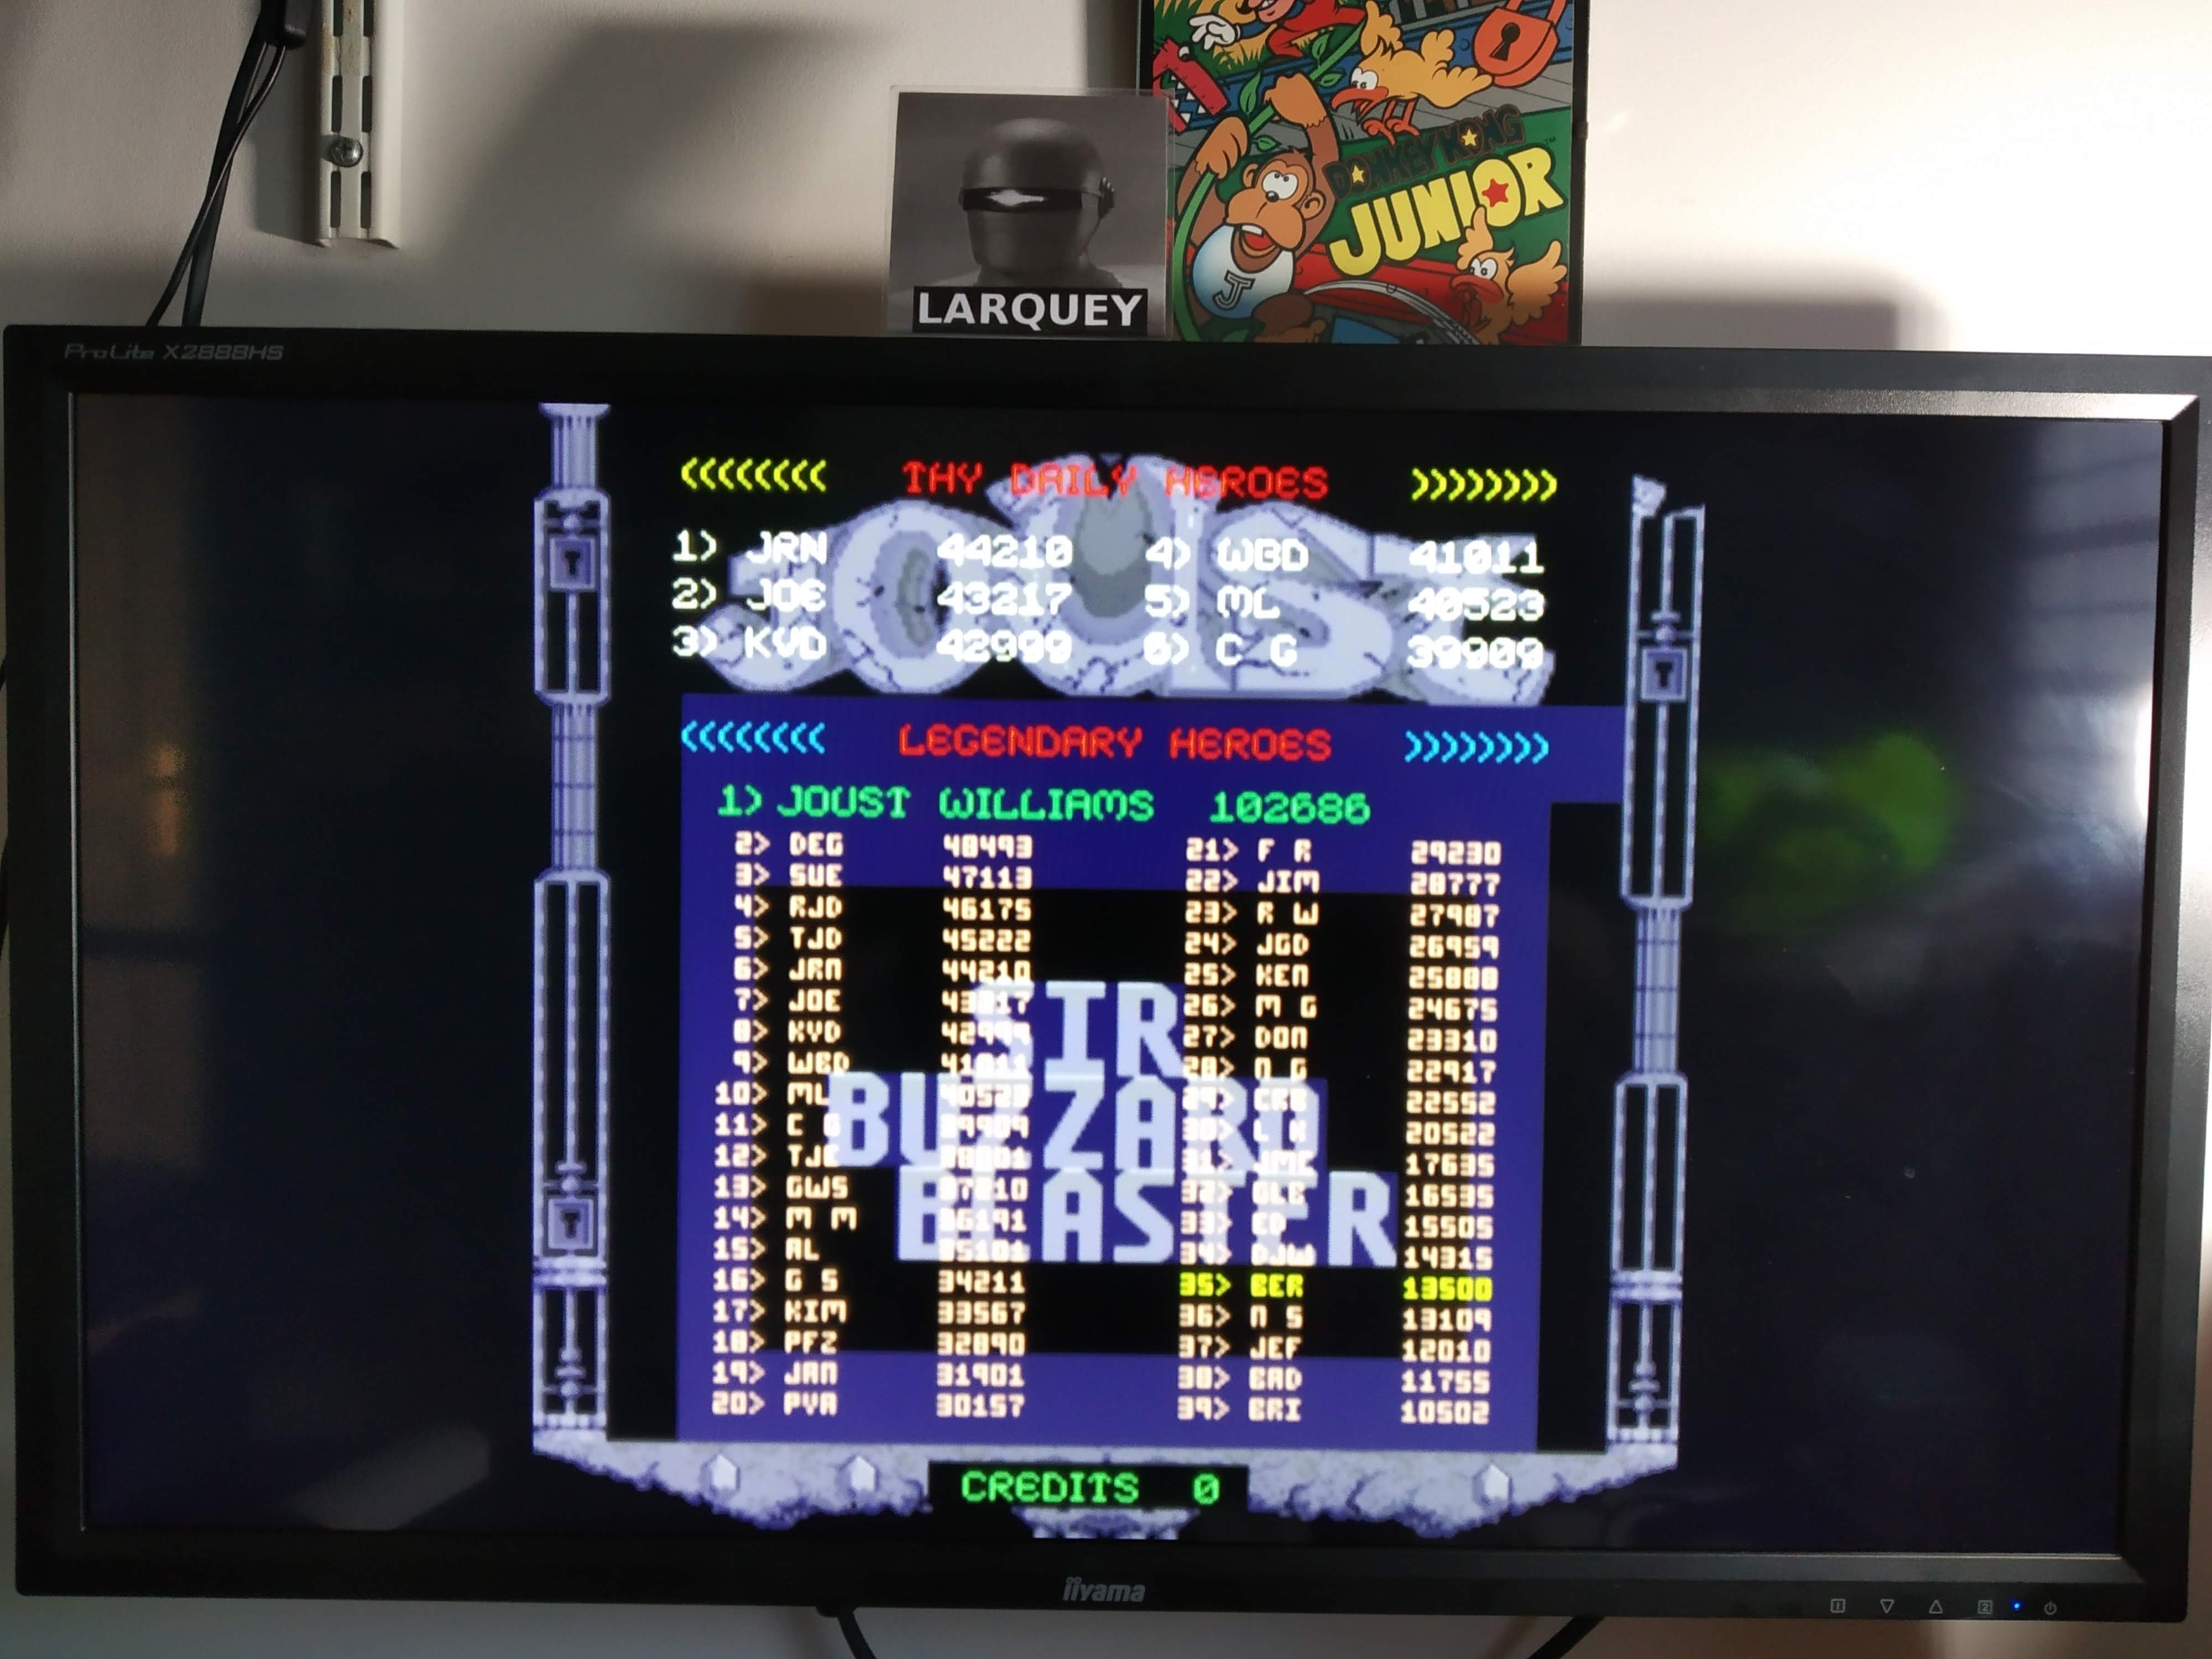 Larquey: Midway Arcade Treasures: Joust II (Playstation 2 Emulated) 13,500 points on 2020-08-02 06:46:37